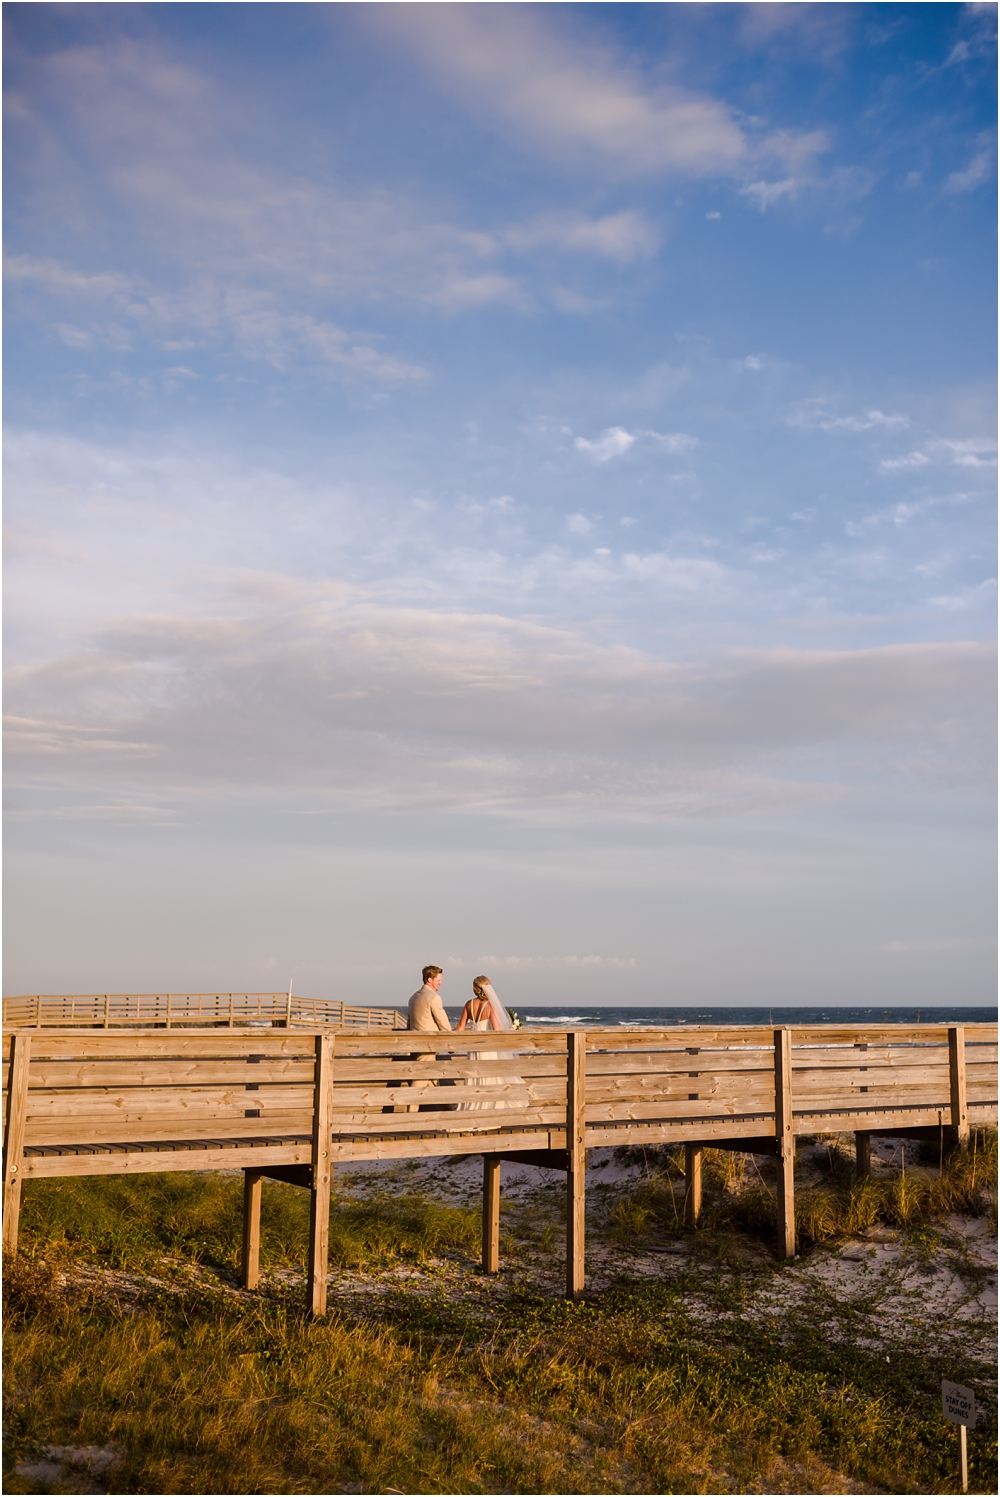 dillard-florida-wedding-photographer-panama-city-beach-dothan-tallahassee-kiersten-grant-photography-141.jpg